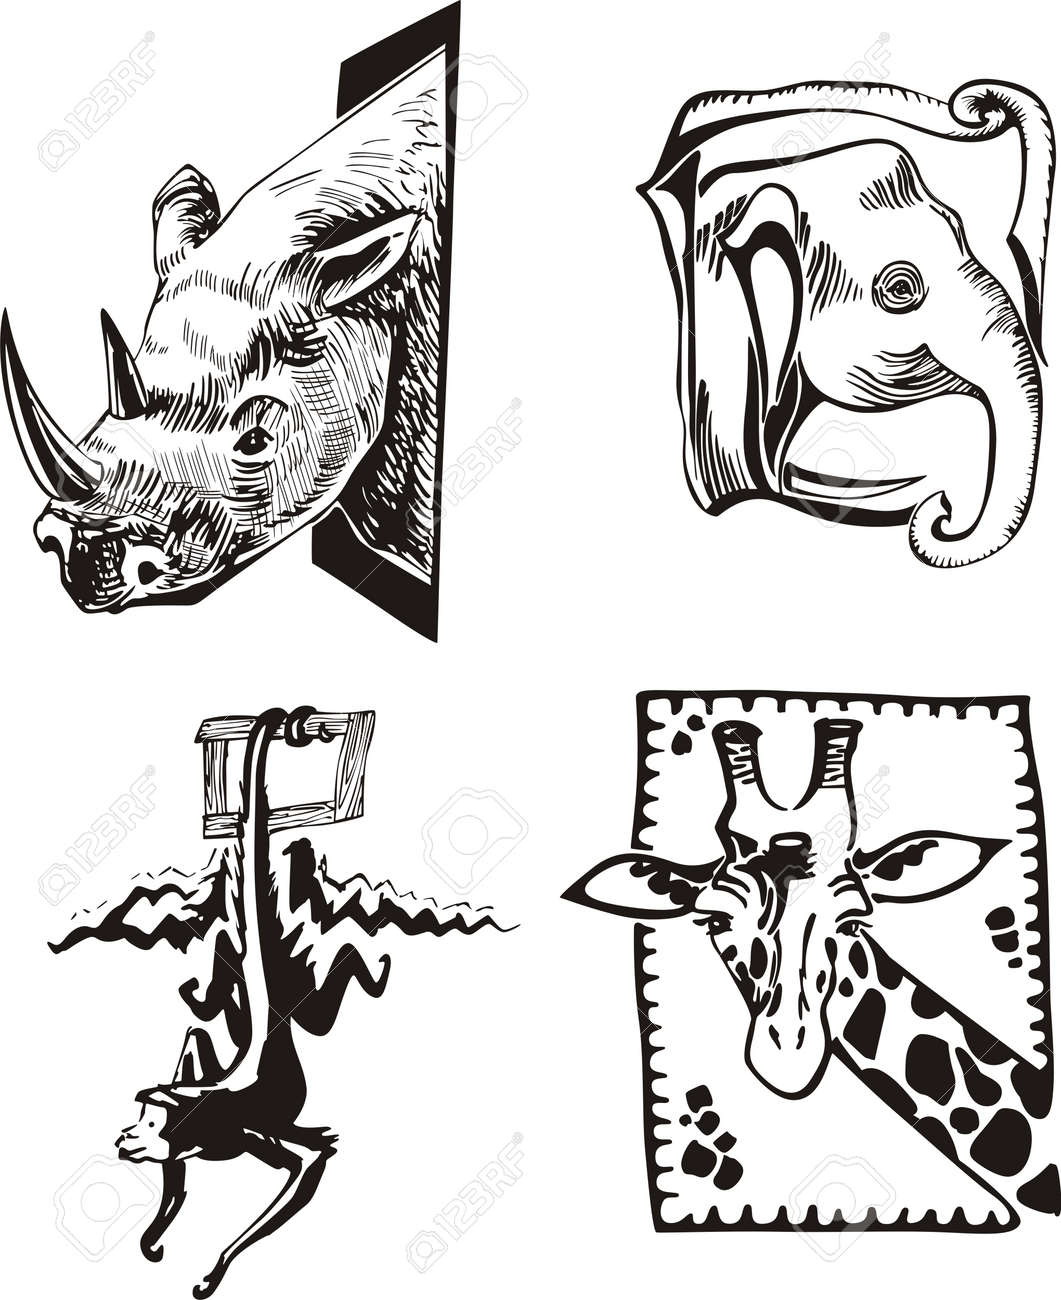 Wild Animal Sketches Sketches of African Wild